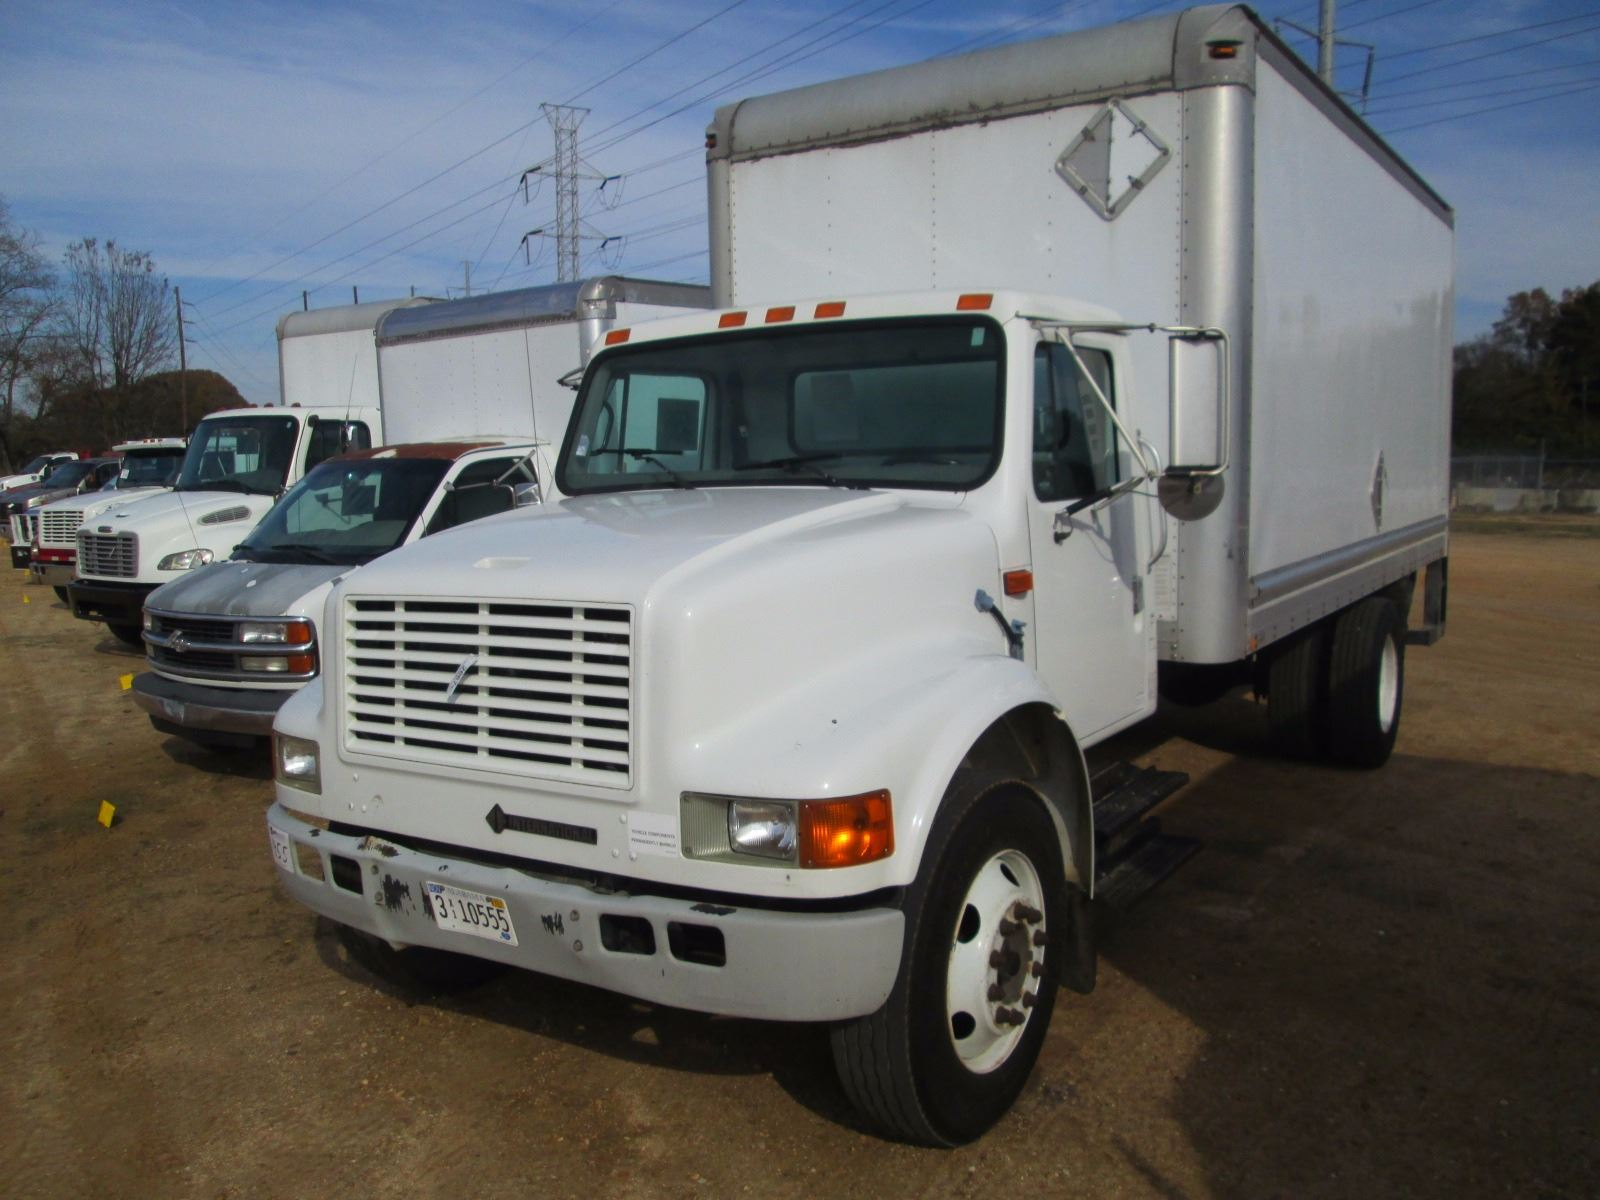 small resolution of image 1 1999 international 4700 box truck vin sn 1htscabm9xh217812 s